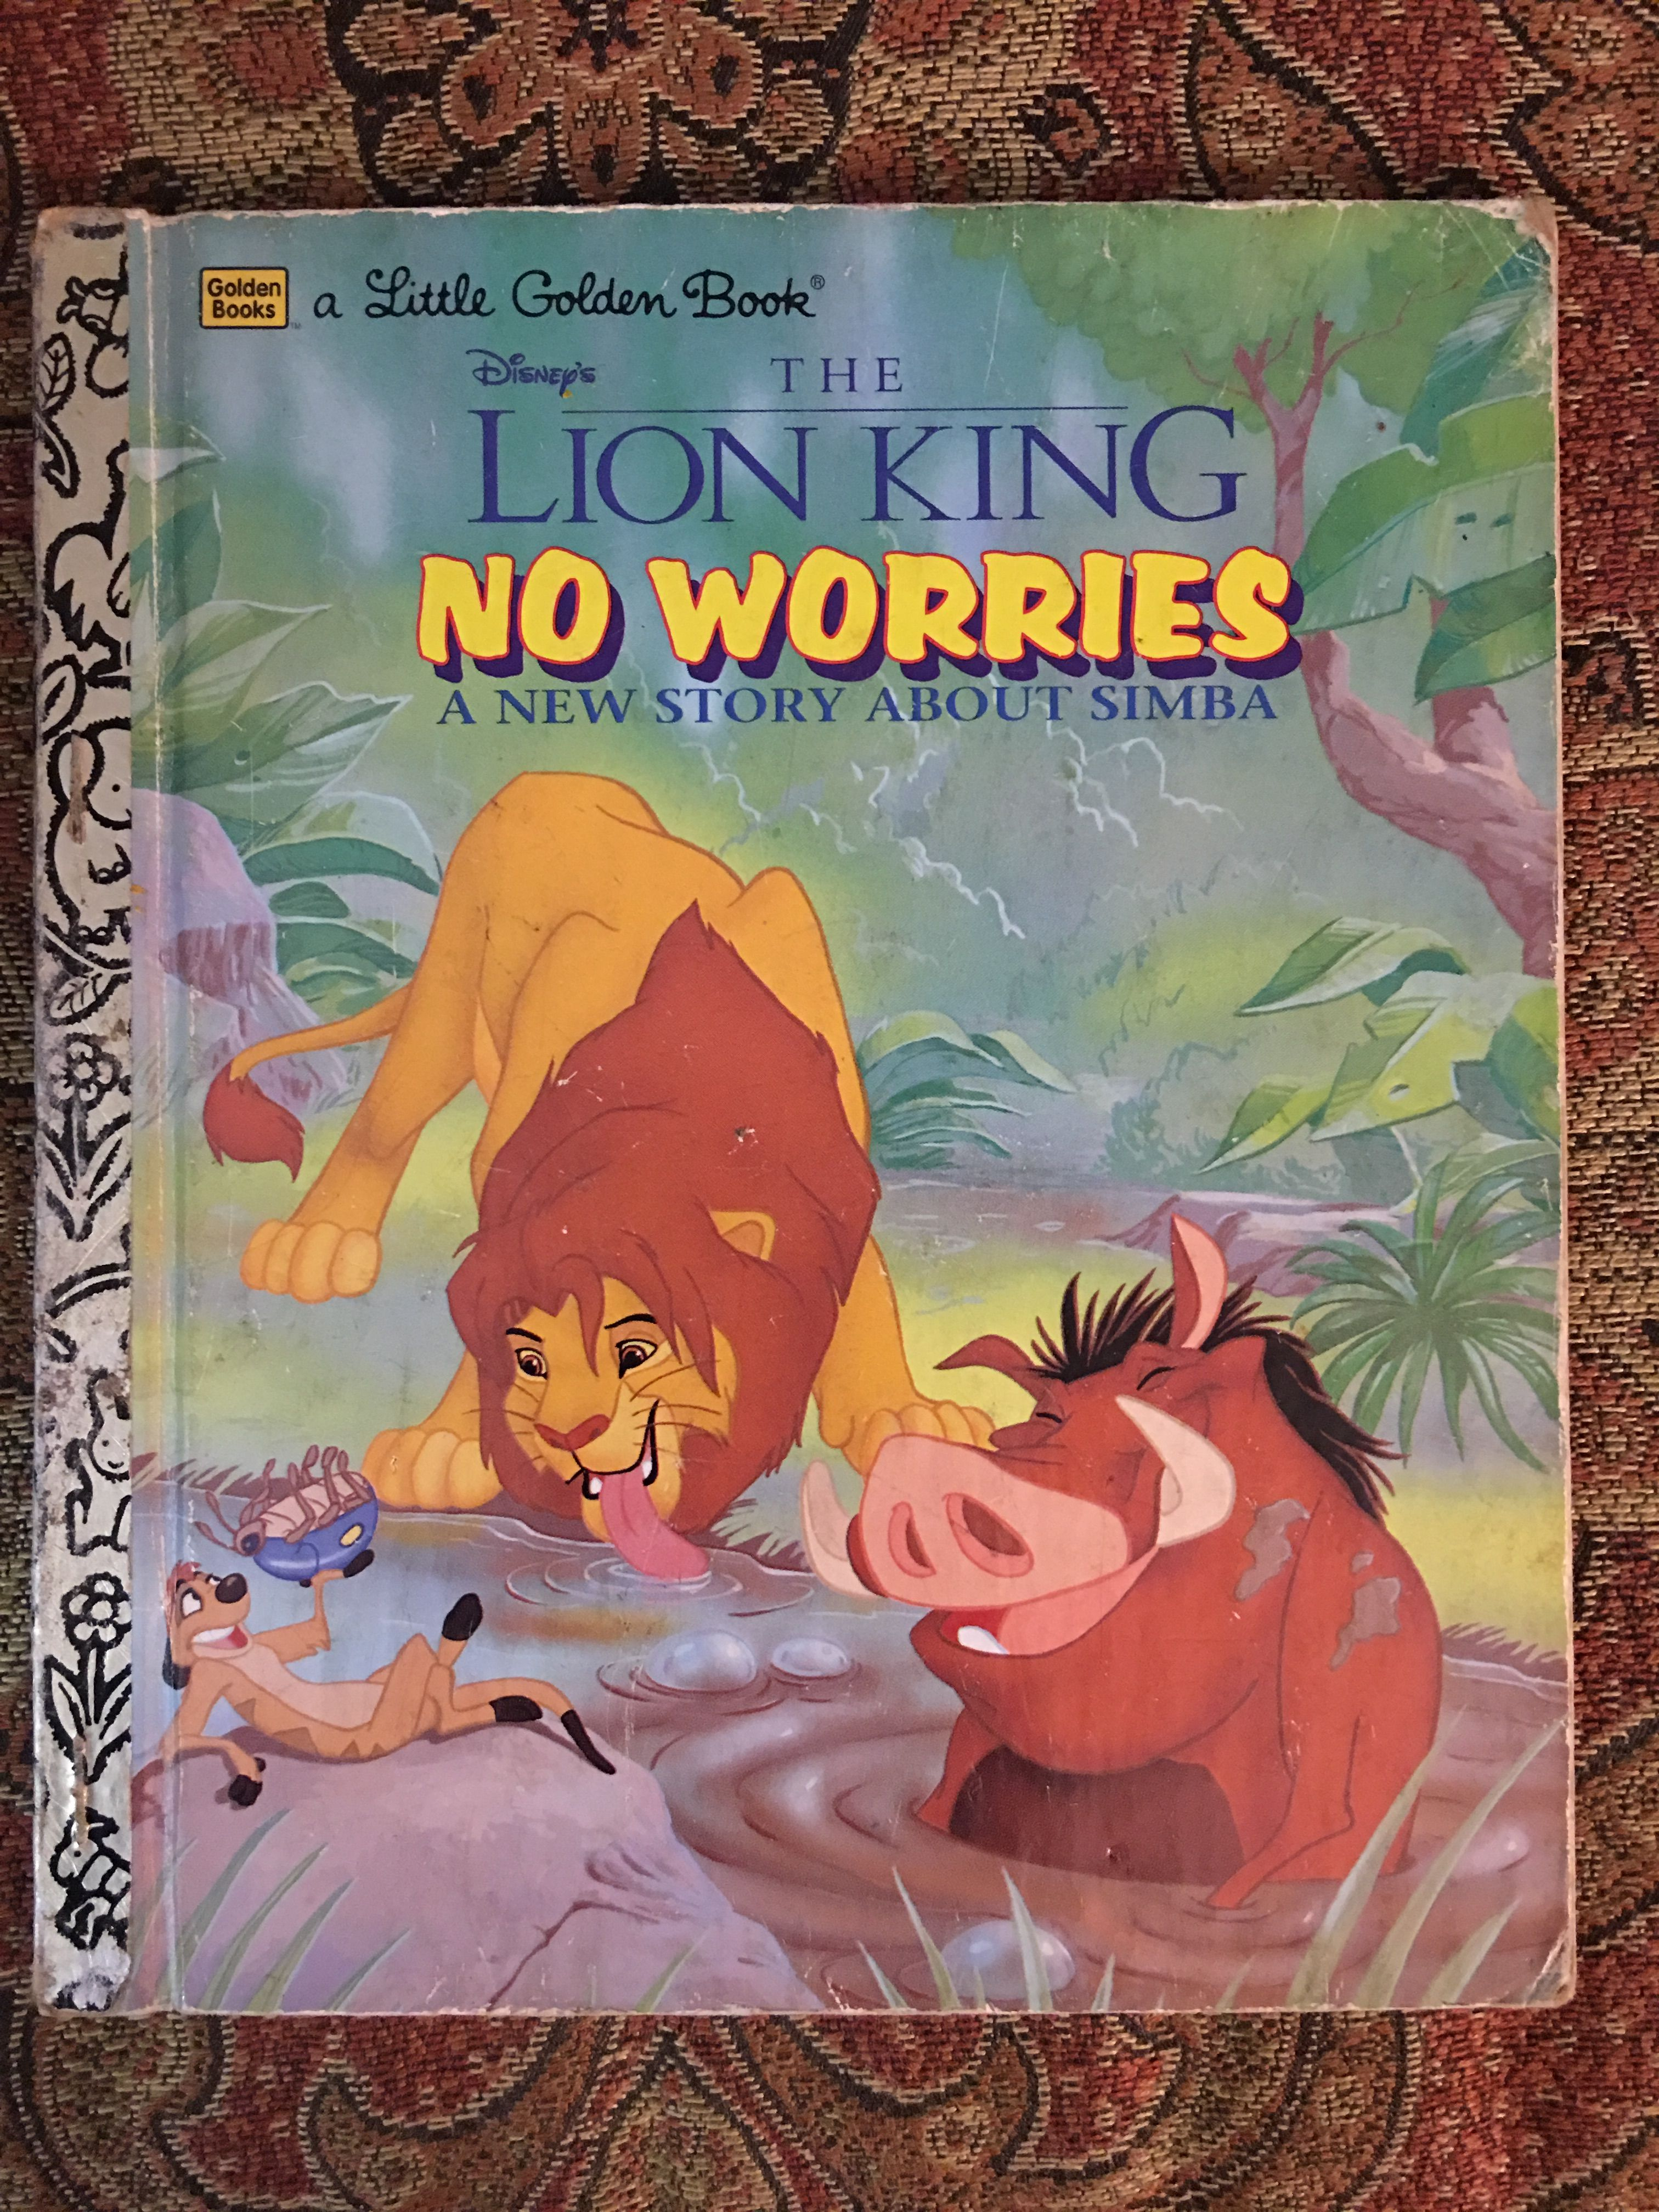 Disney's The Lion King No Worries A New Story About Simba 1997